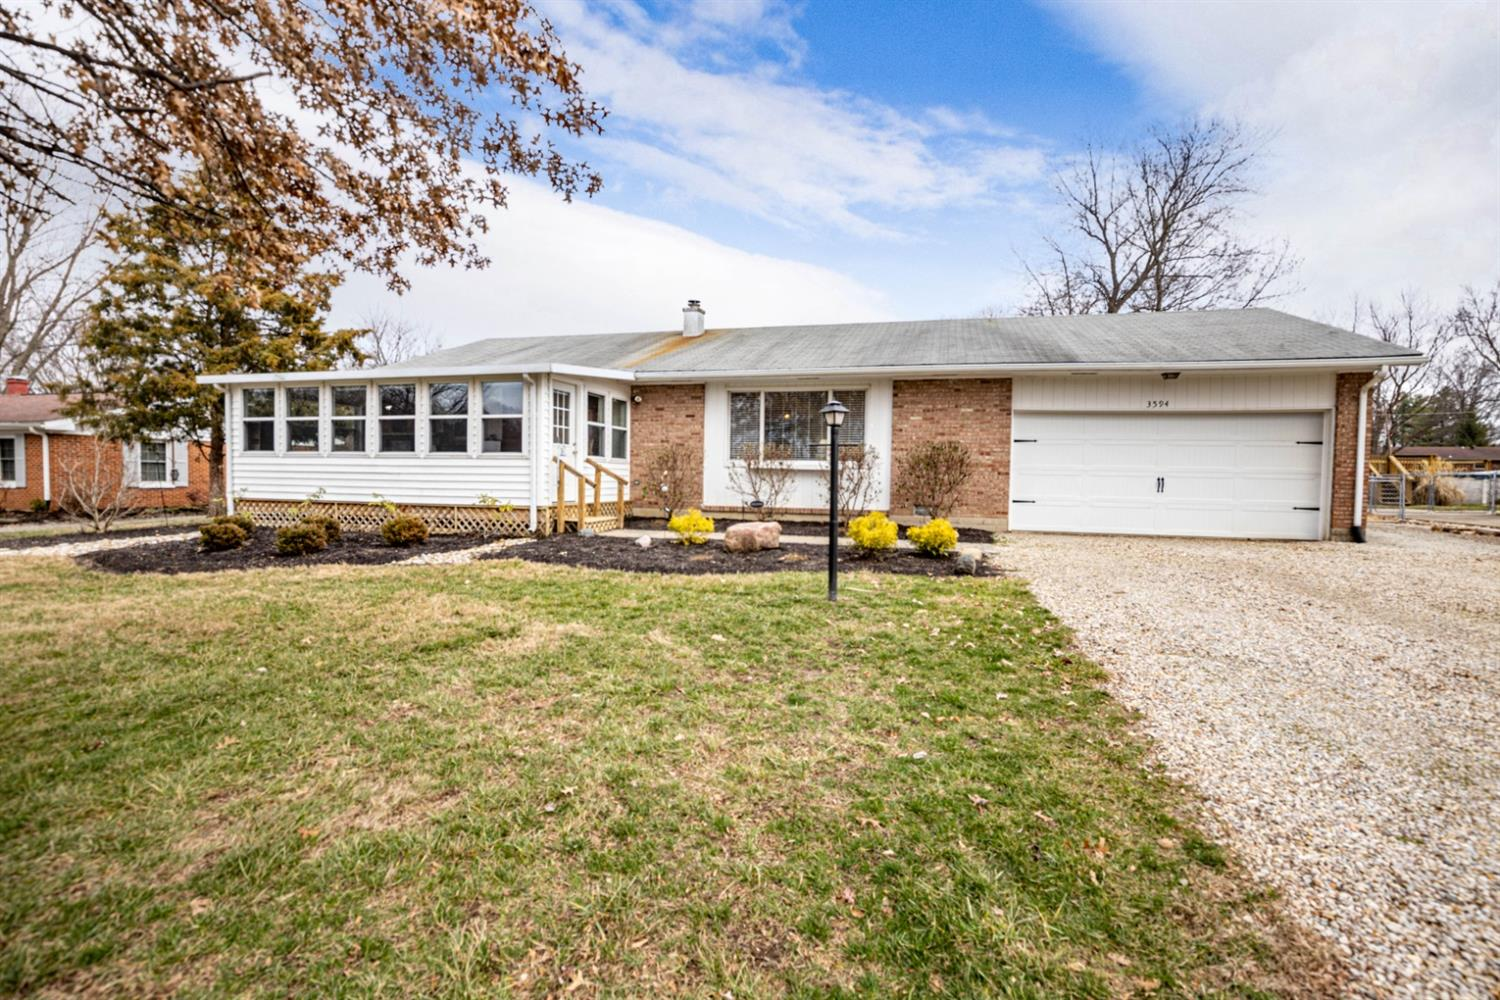 Property for sale at 3594 Crestview Avenue, Clearcreek Twp.,  Ohio 45036